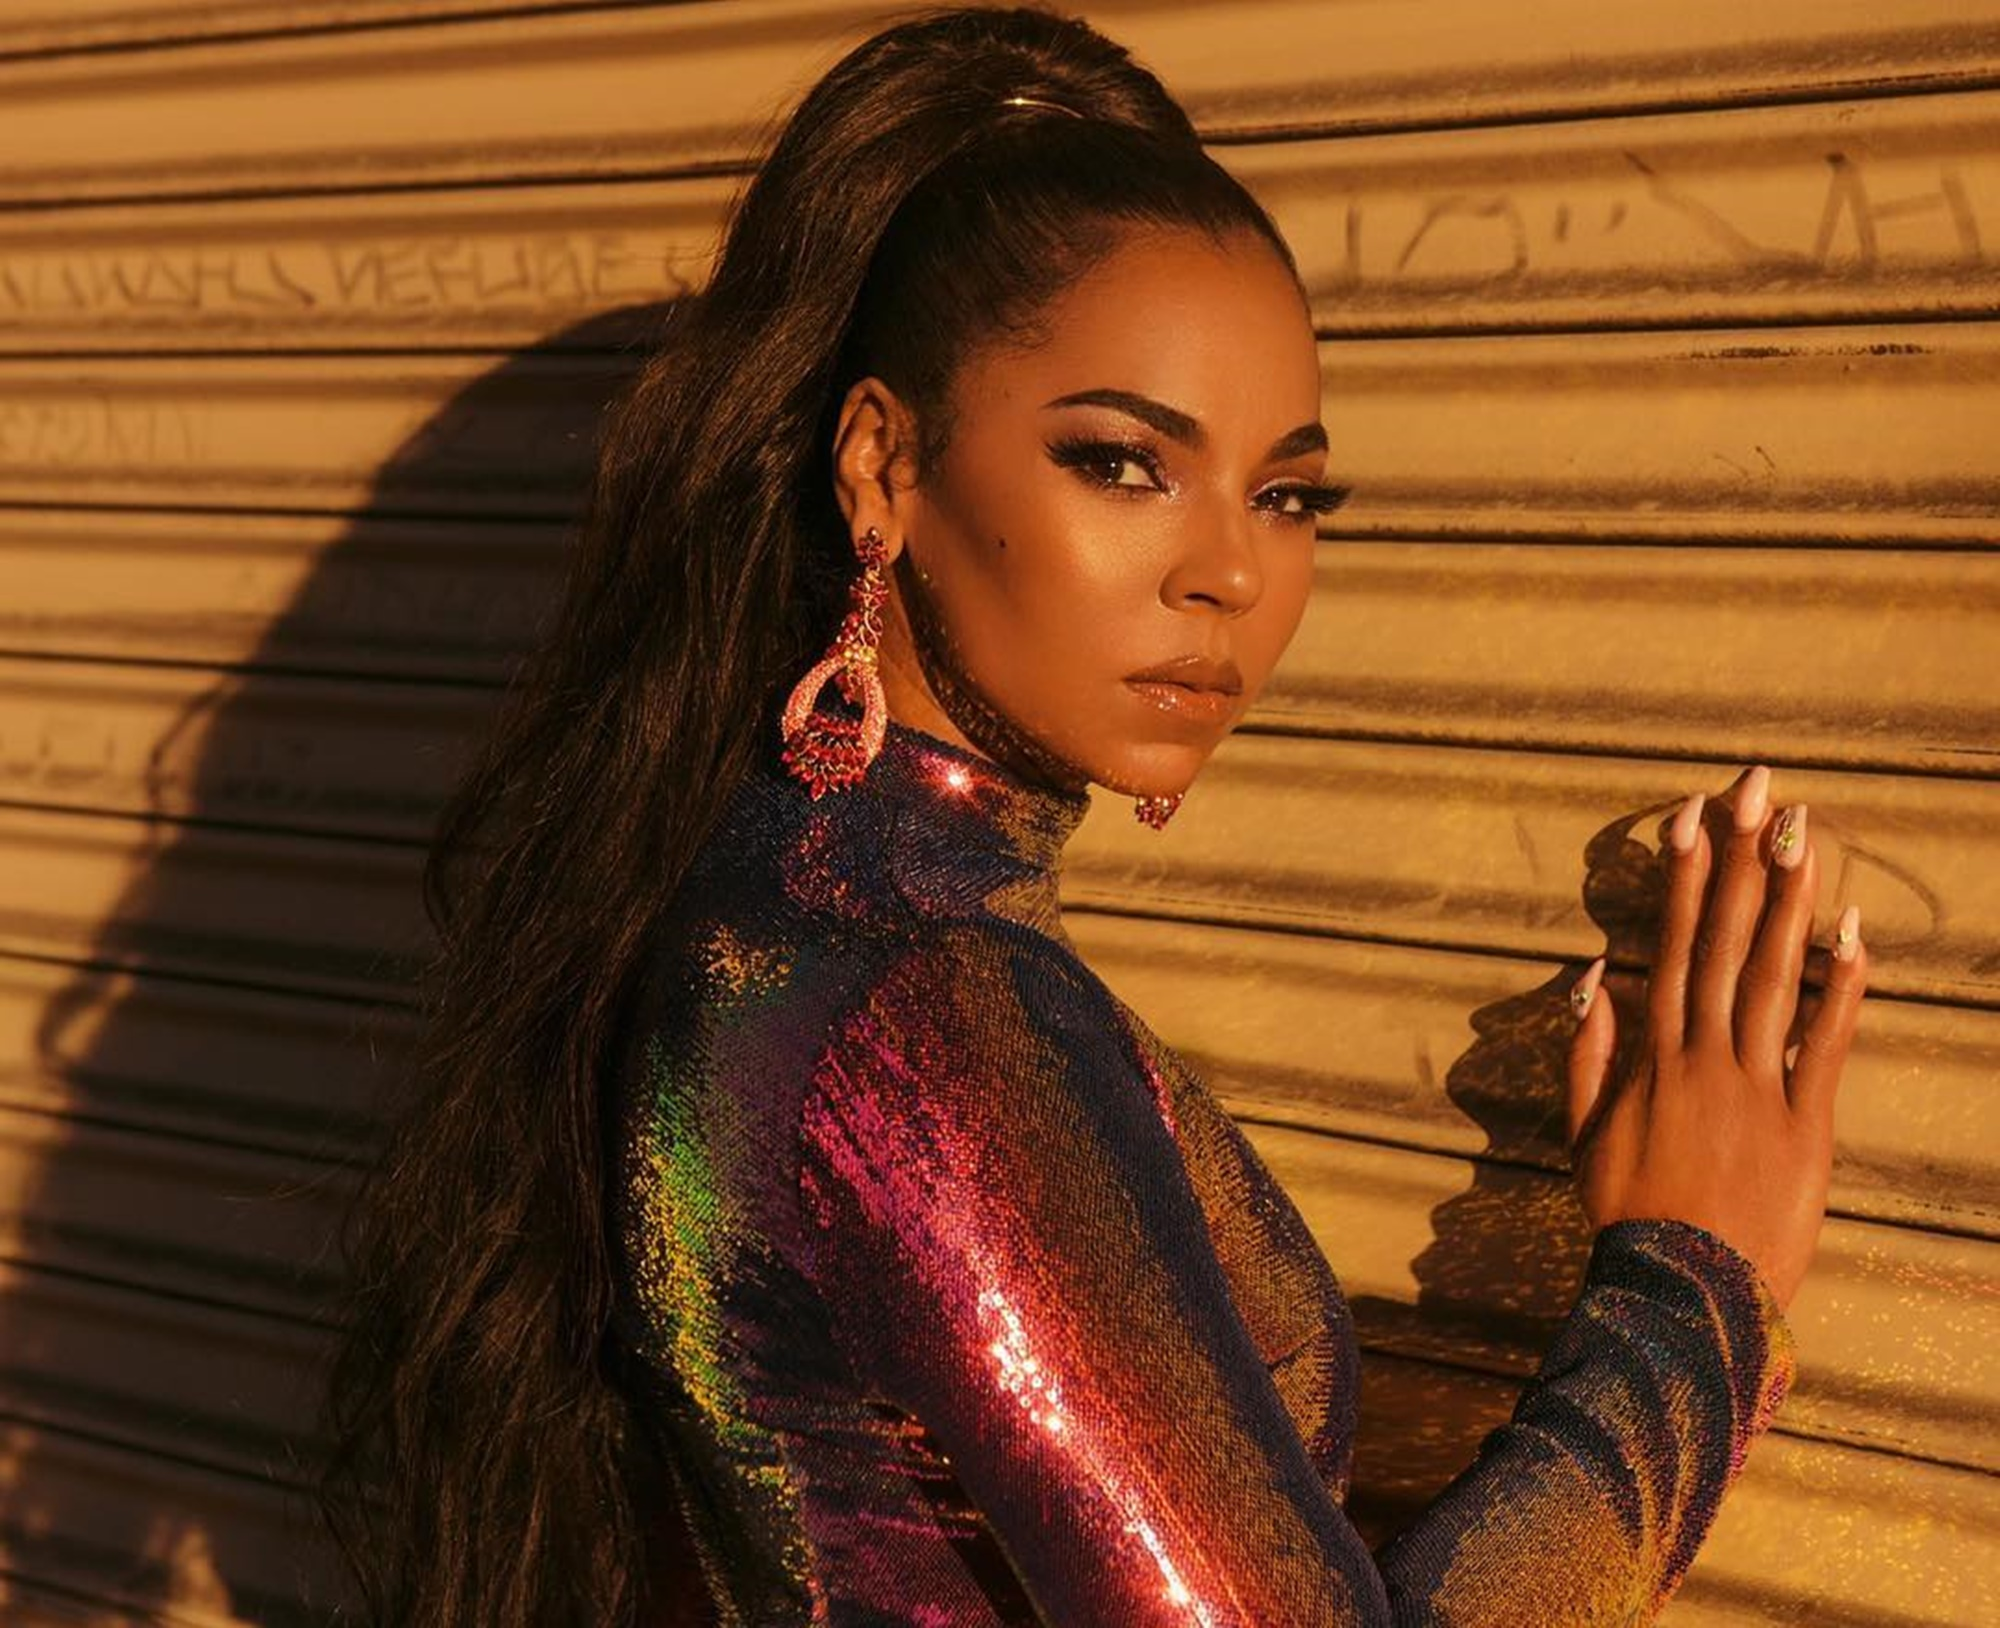 ashanti-dons-racy-dress-at-stuck-movie-premiere-fans-say-this-video-featuring-her-dangerous-curves-is-just-too-much-too-handle